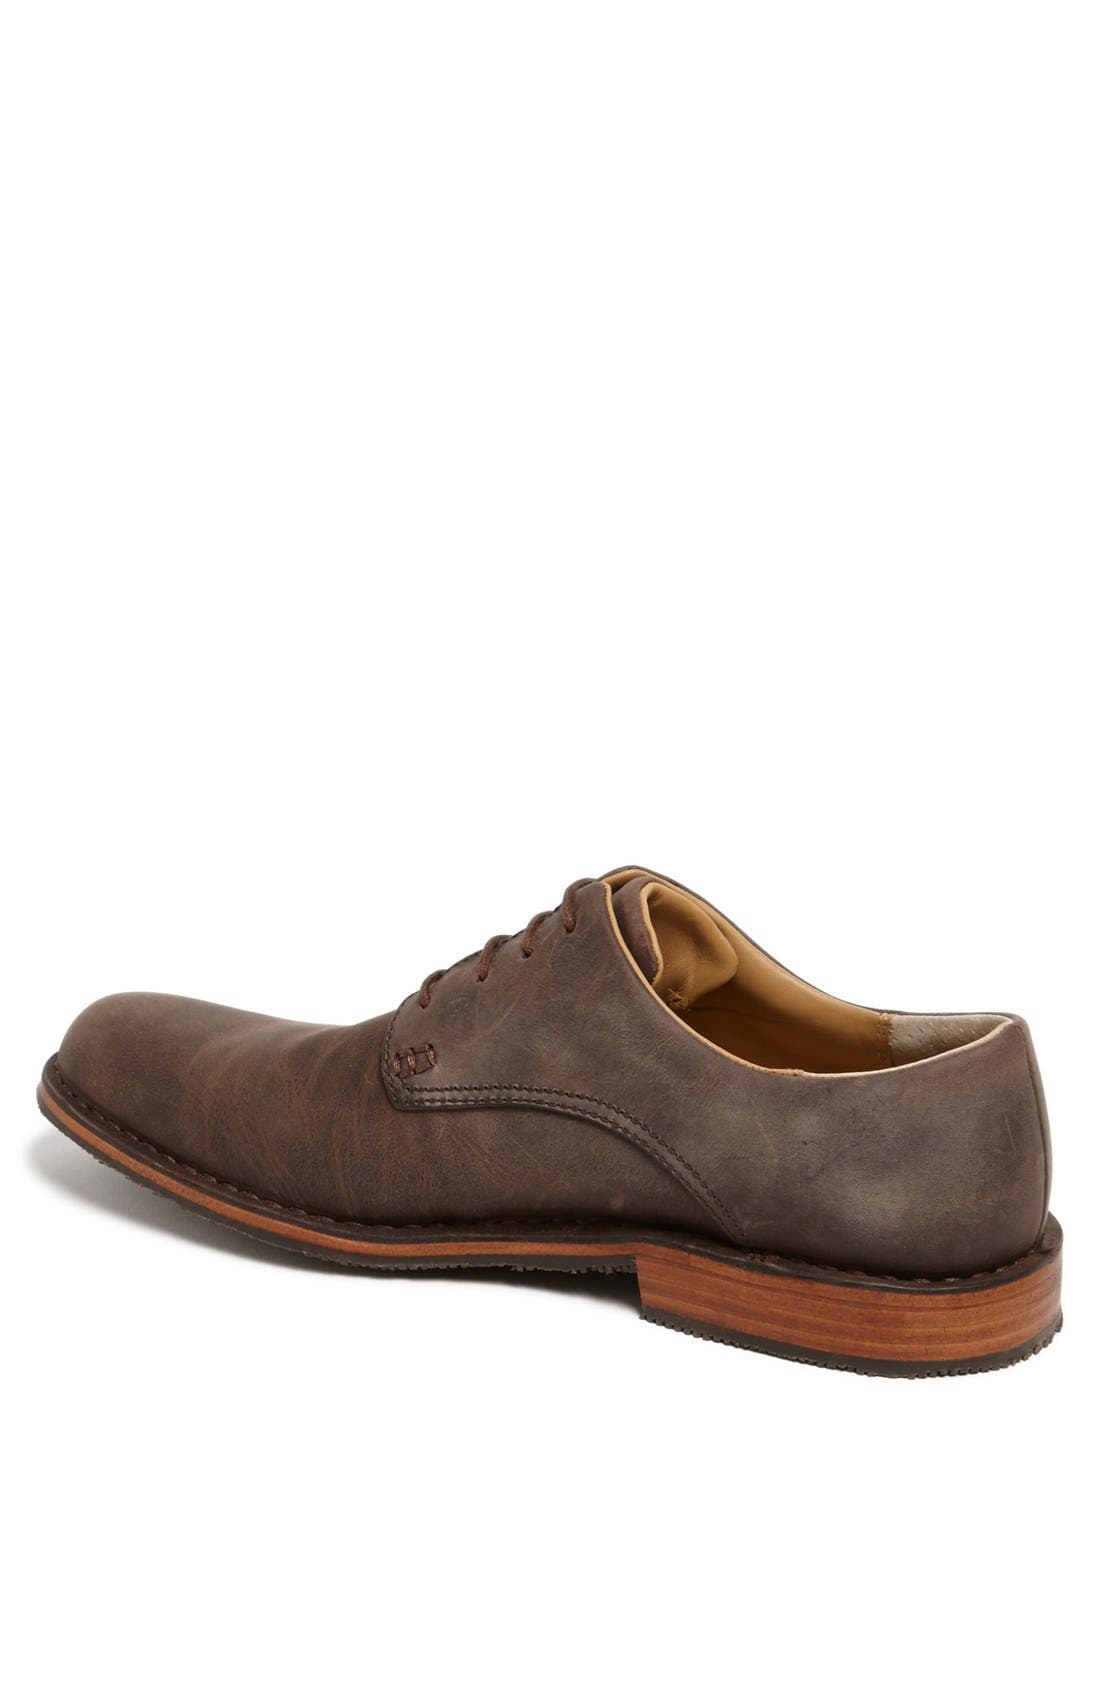 Alternate Image 2  - Sebago 'Salem' Oxford (Online Only)